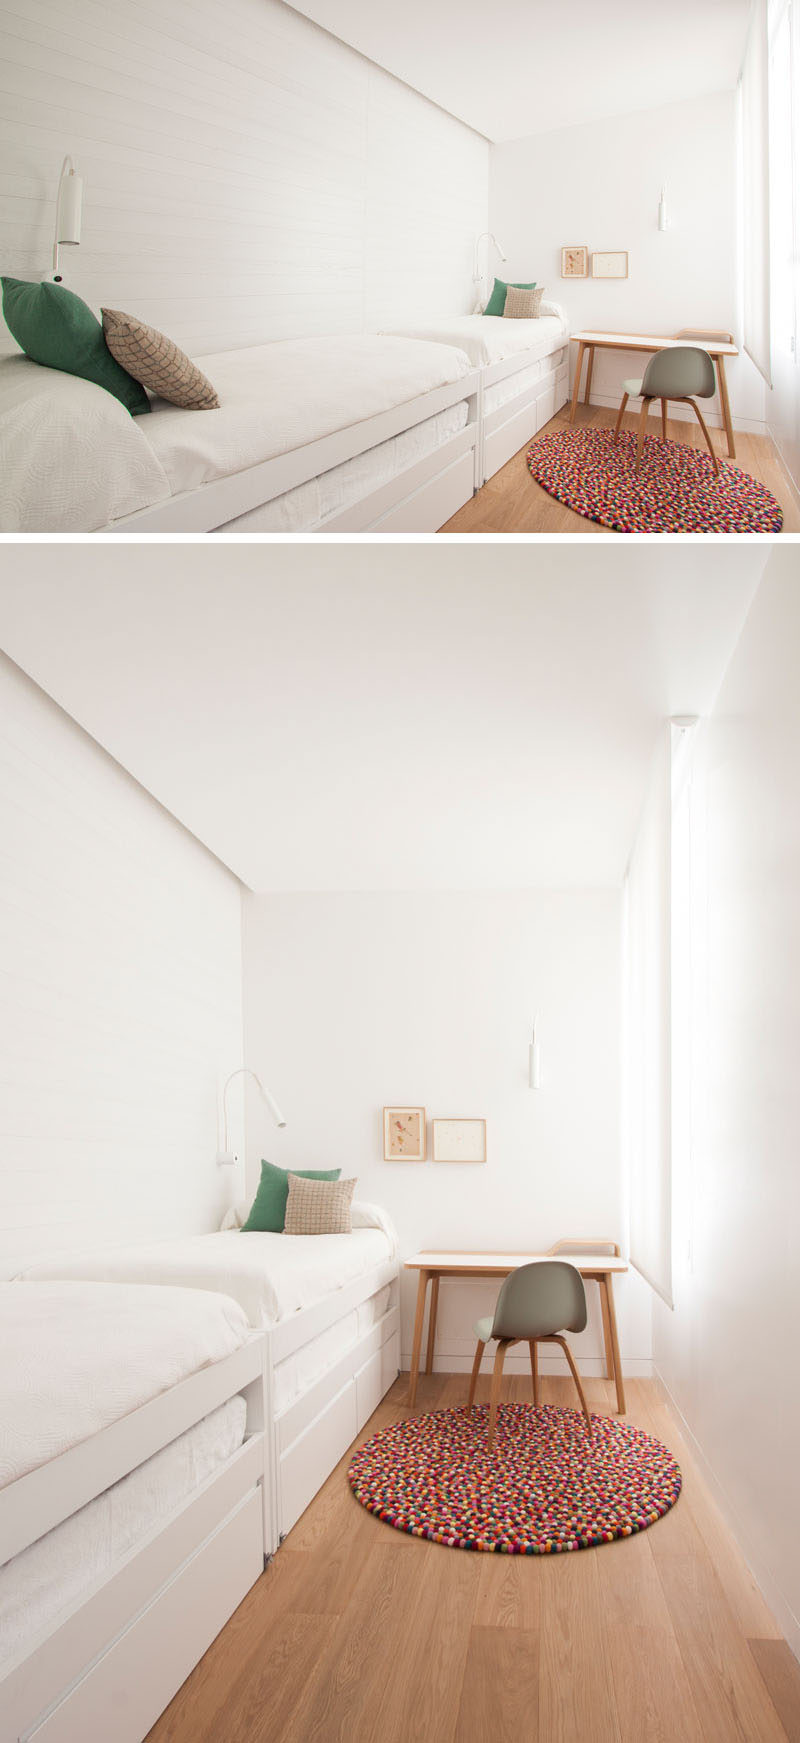 In this modern children's bedroom, that's very long and narrow, two beds have been included along the white wood slat wall, and those two beds have trundle beds for when guests stay over. A small desk provides a place to write a note by the window.